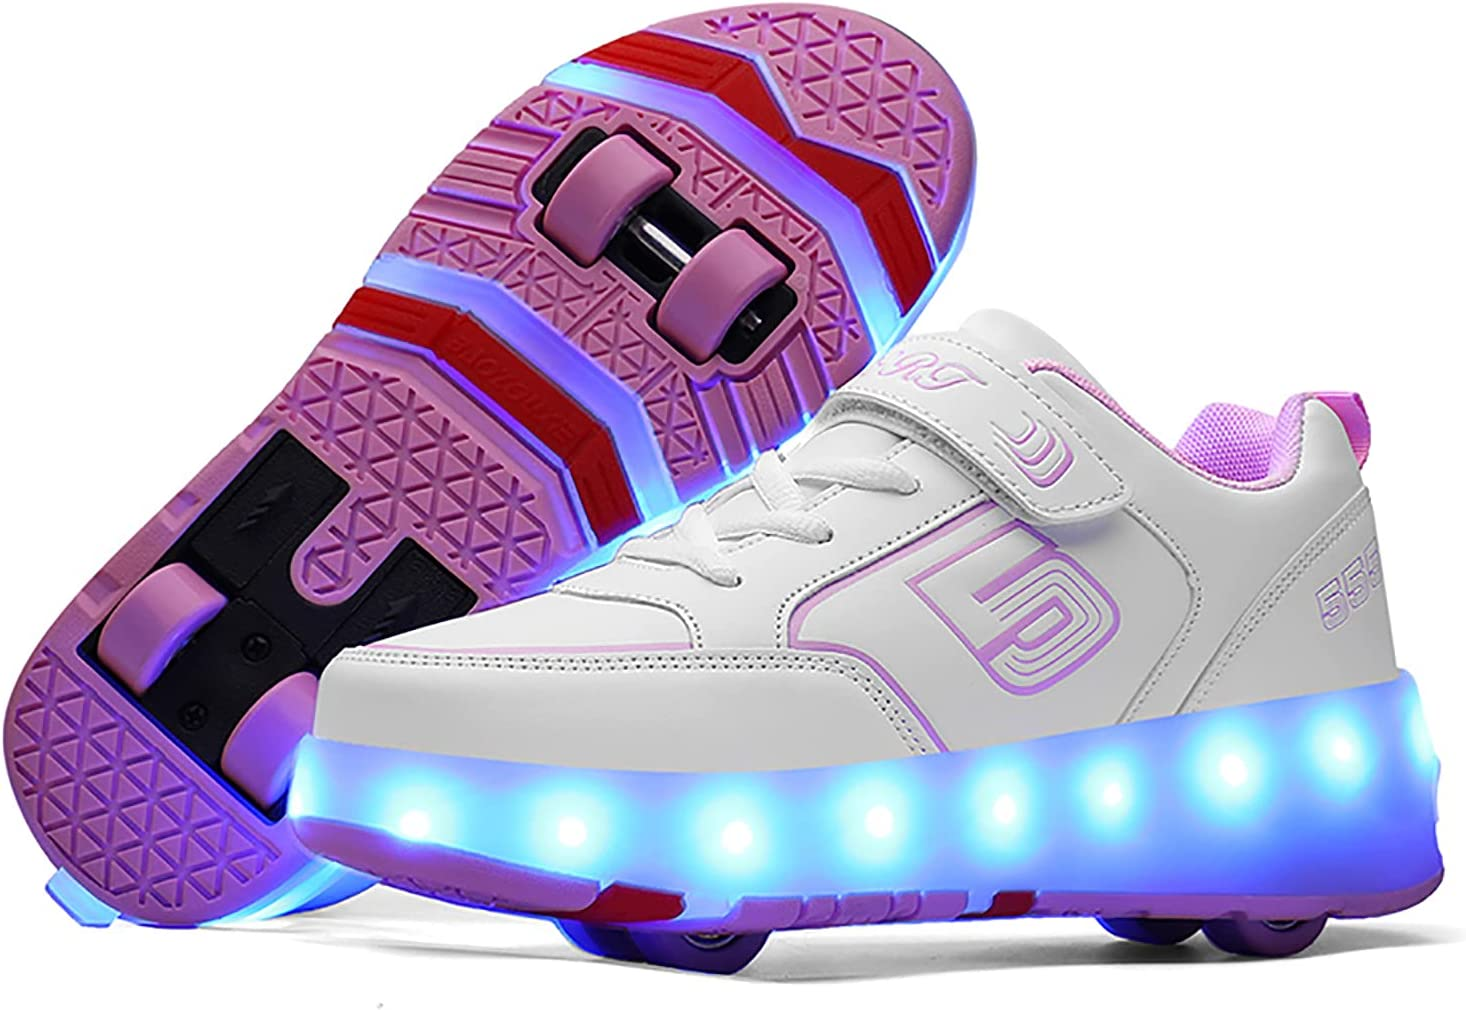 AMXSML Kids Roller Skate Shoes with Wheels USB Charging Girls Boys LED Light up Sneakers Technical Skateboarding Shoe Outdoor Cross Sport Trainers,White pink2,29EU